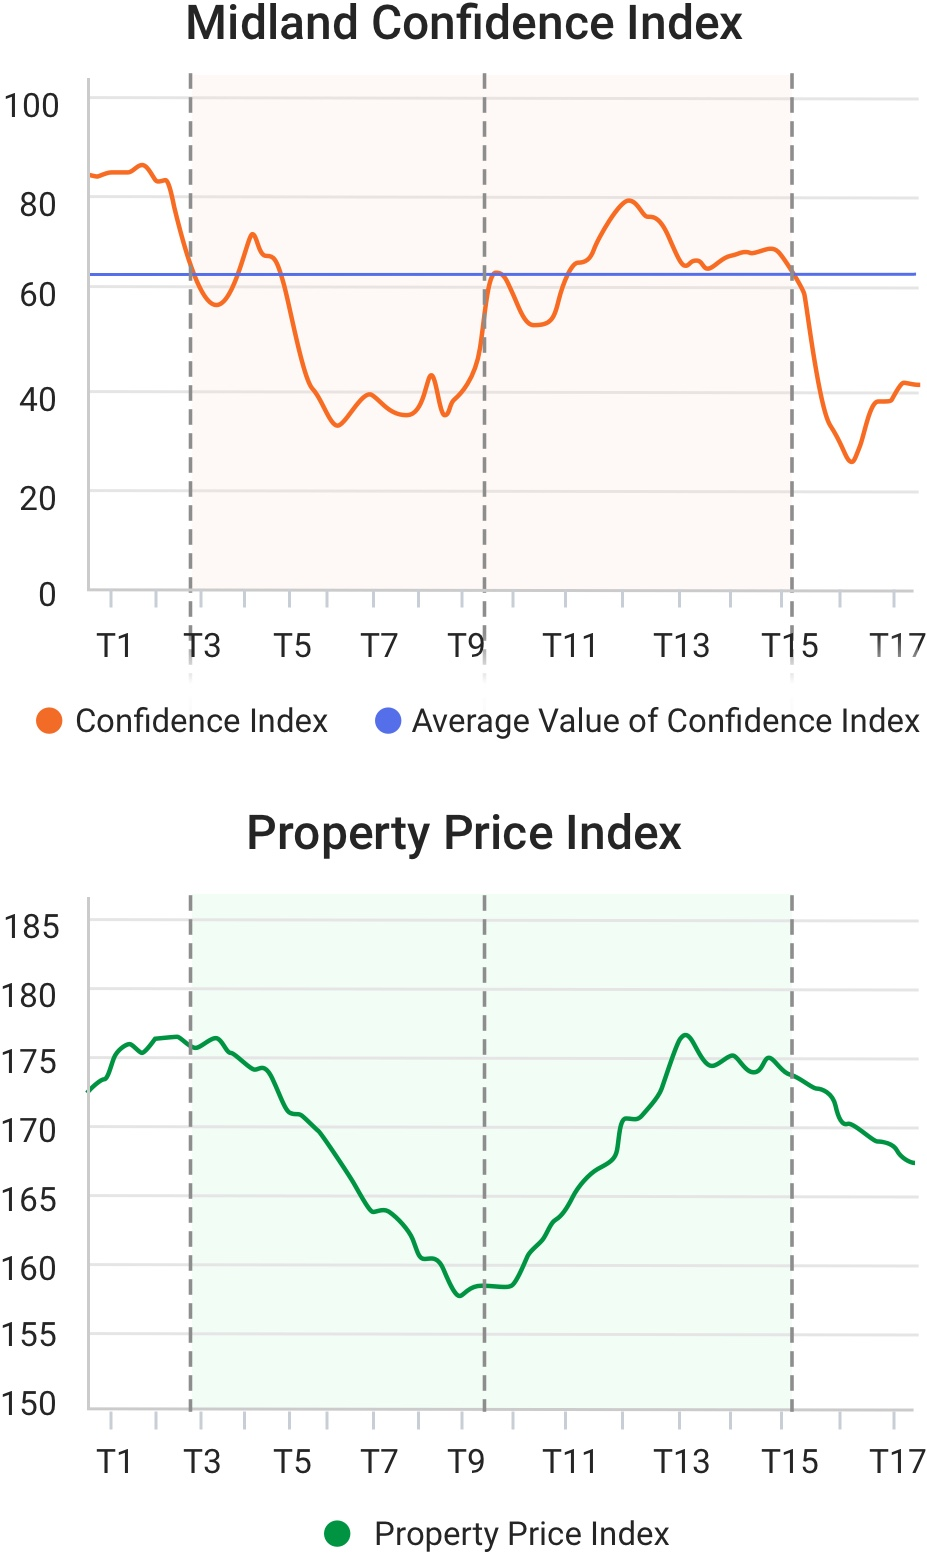 A brief introduction of the Midland Confidence Index